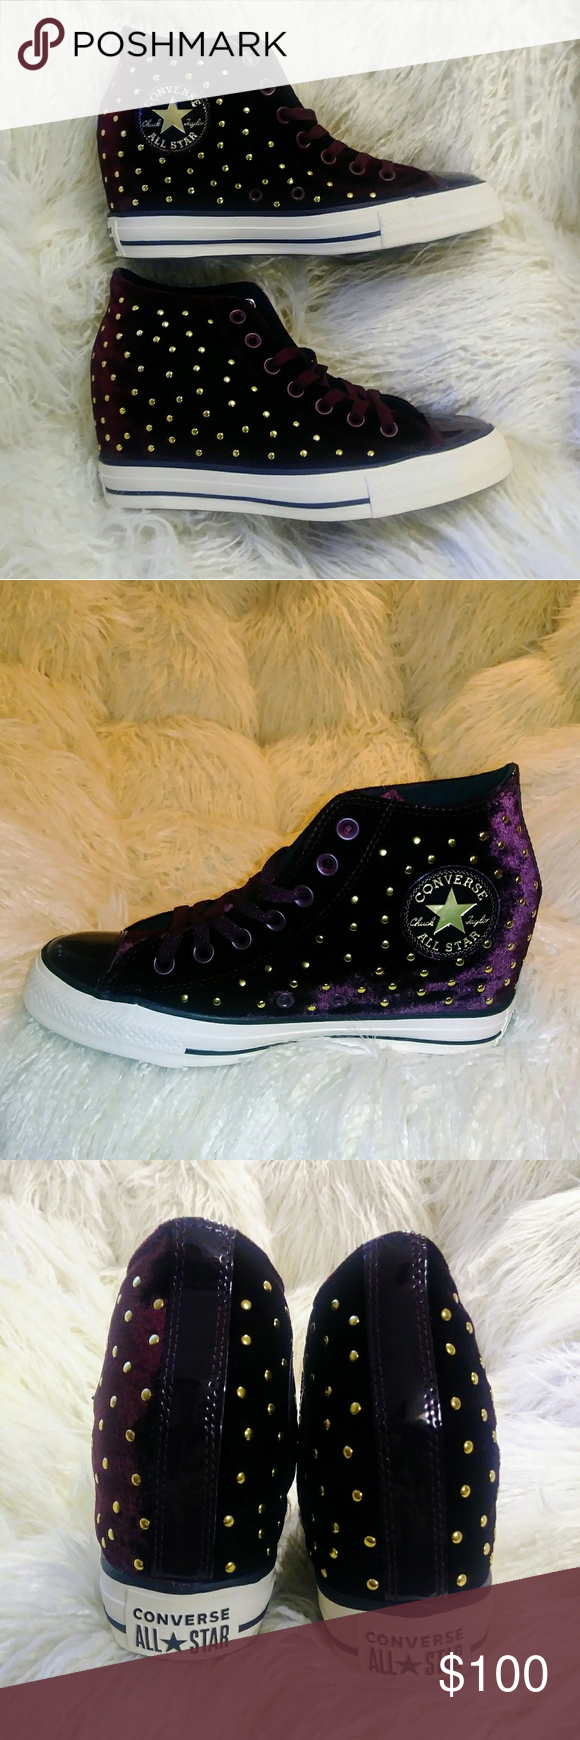 d1c88587ff NWT Converse Chuck Taylor Lux Wedges Bootie Velvet - So sexy!!!! -